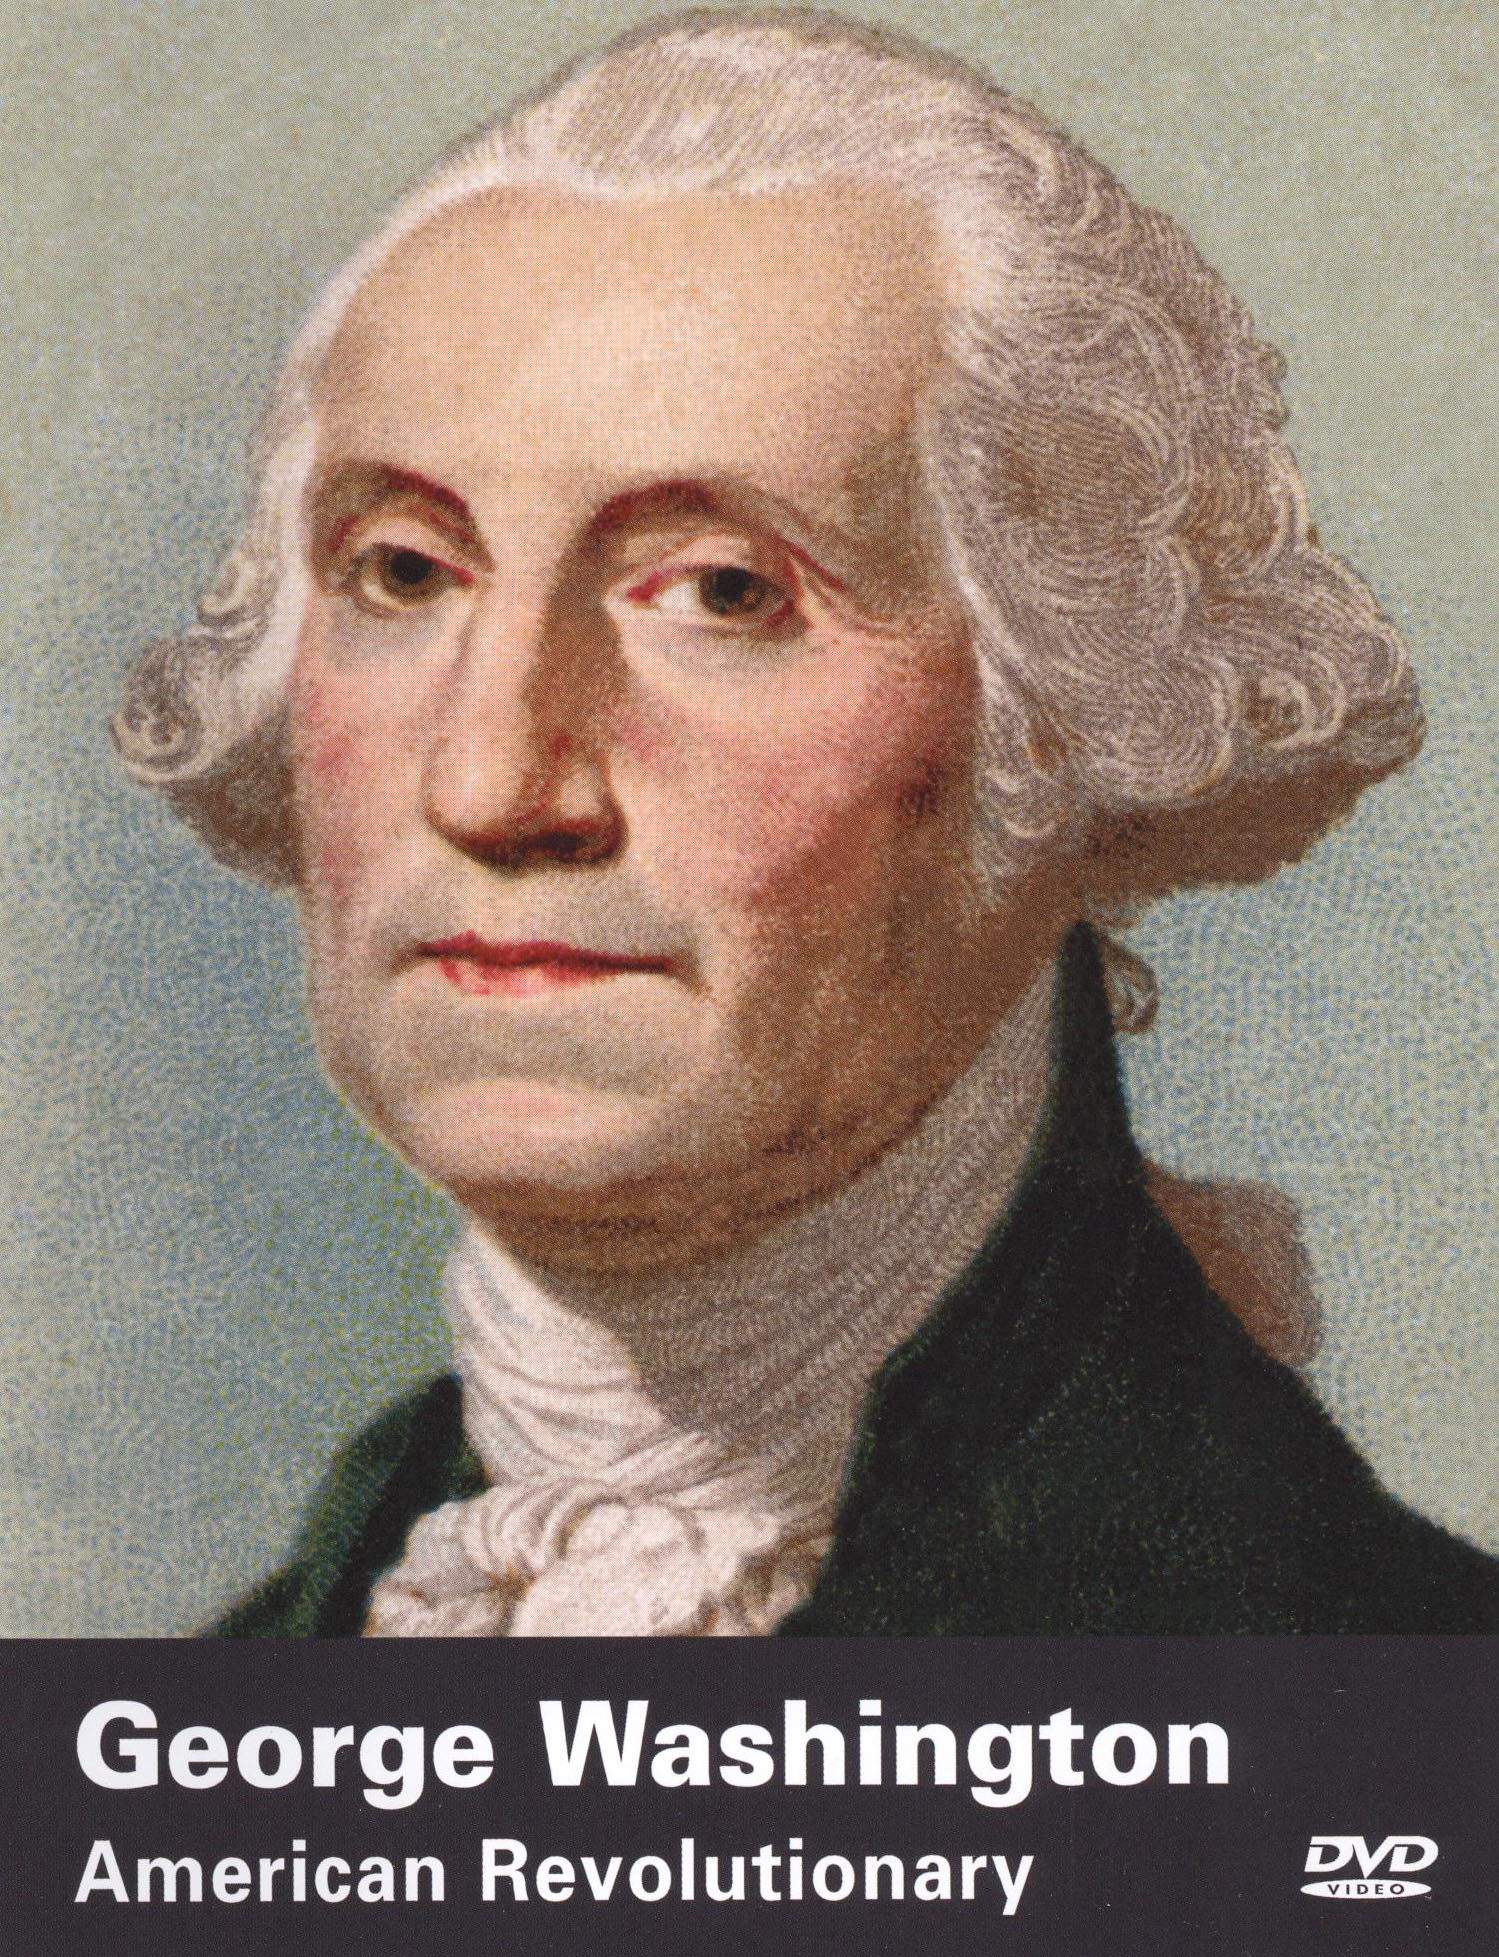 a biography of george washington the most important american figure George washington was already a war hero when he became the overwhelming choice as the new country's first president six important events and his vision of a democracy helped shape the way government operates and establish clear limitations on the most powerful office.